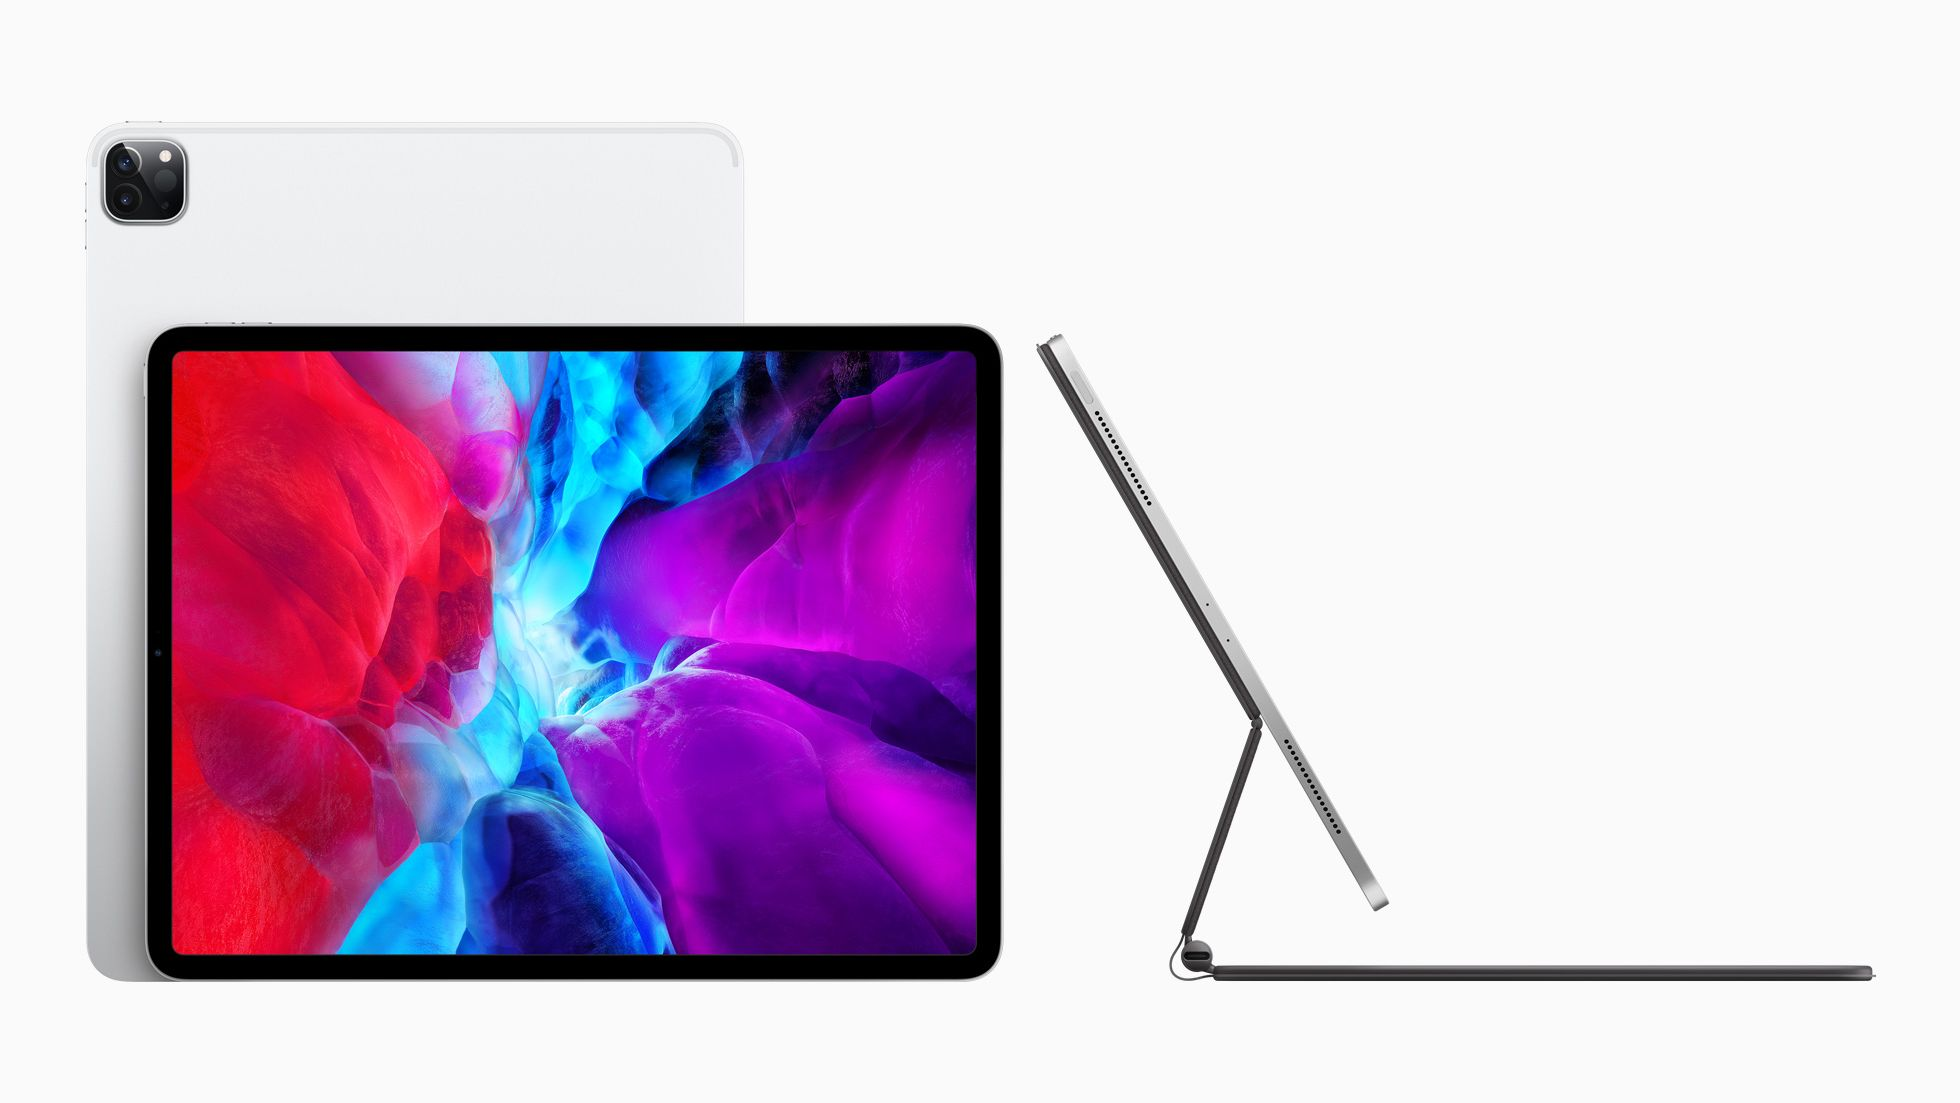 Apple lanserer ny iPad Pro og oppgradert MacBook Air